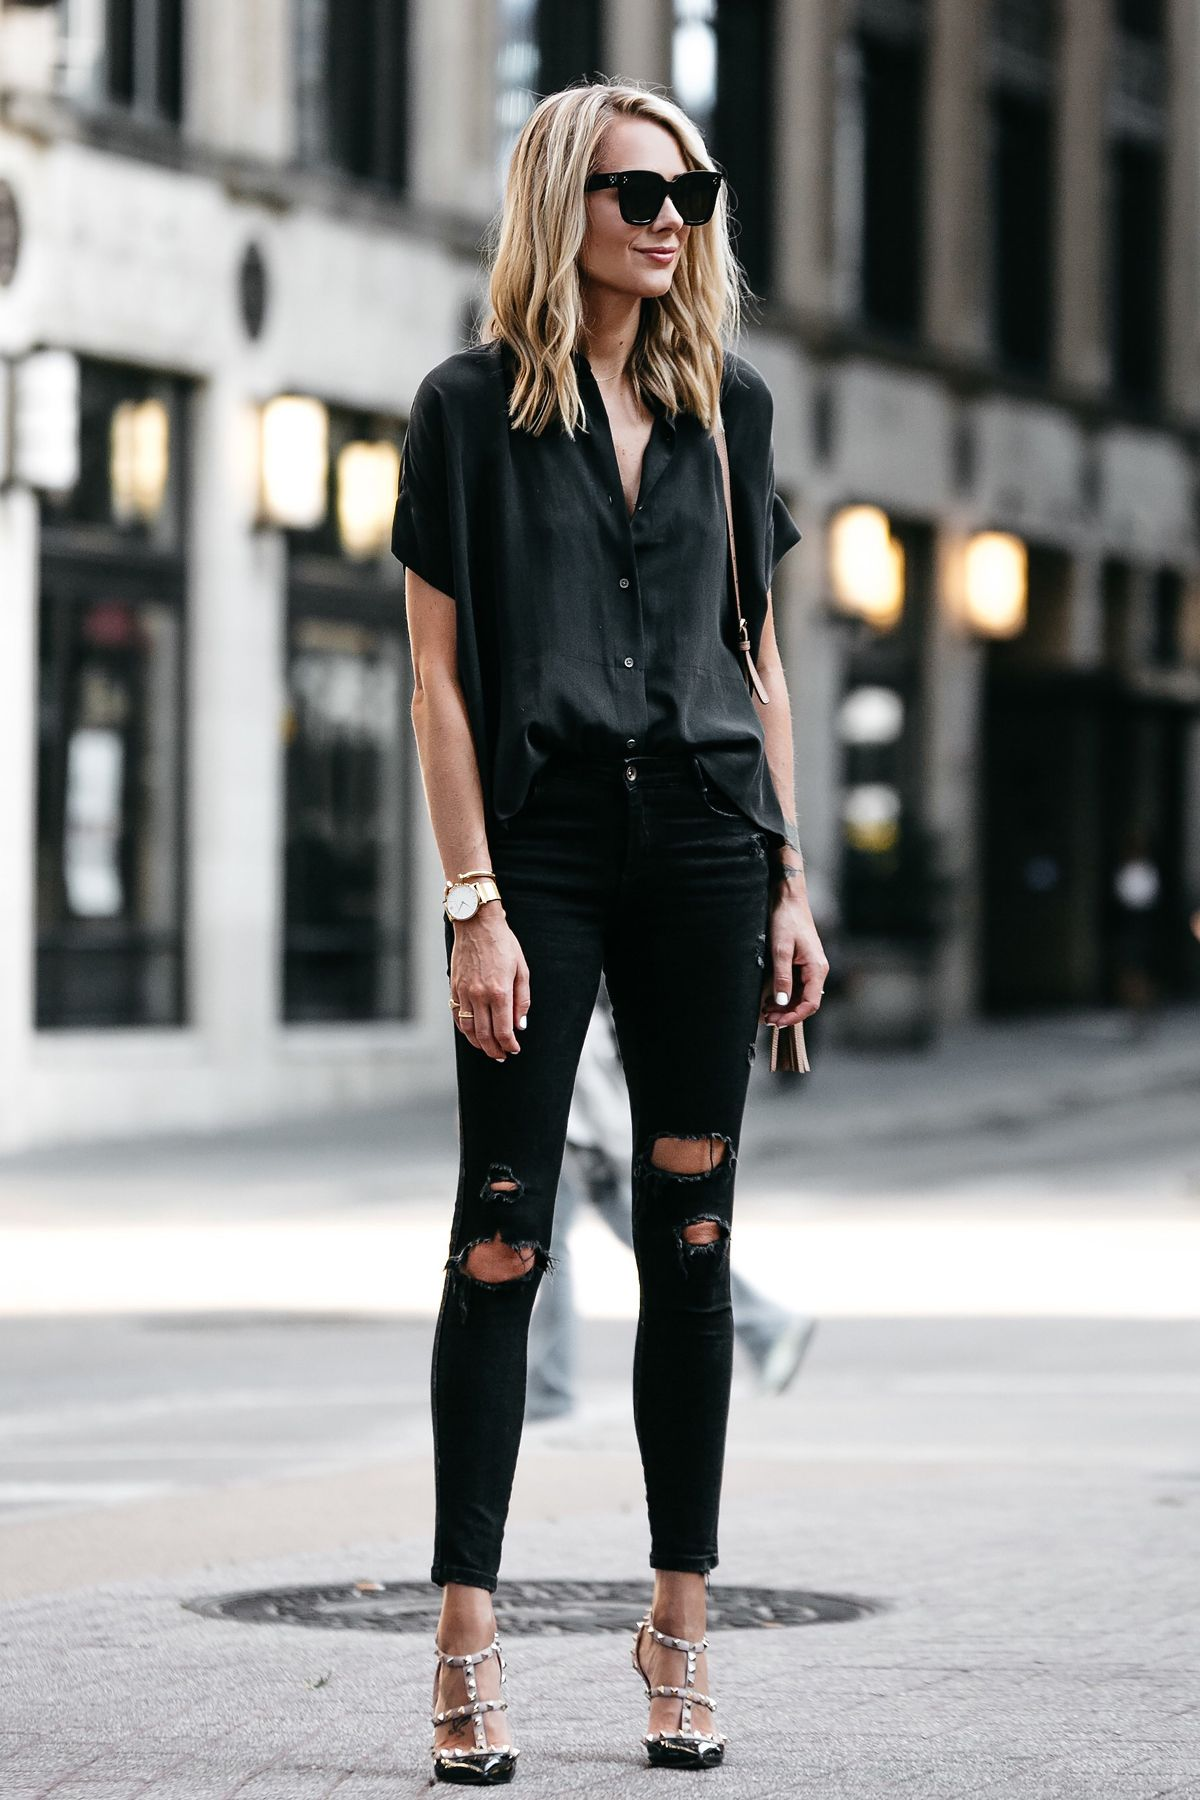 7883d79f013 Blonde Woman Wearing Everlane Black Short Sleeve Button Up Shirt Zara Black  Ripped Skinny Jeans Outfit Valentino Rockstud Pumps Fashion Jackson Dallas  ...